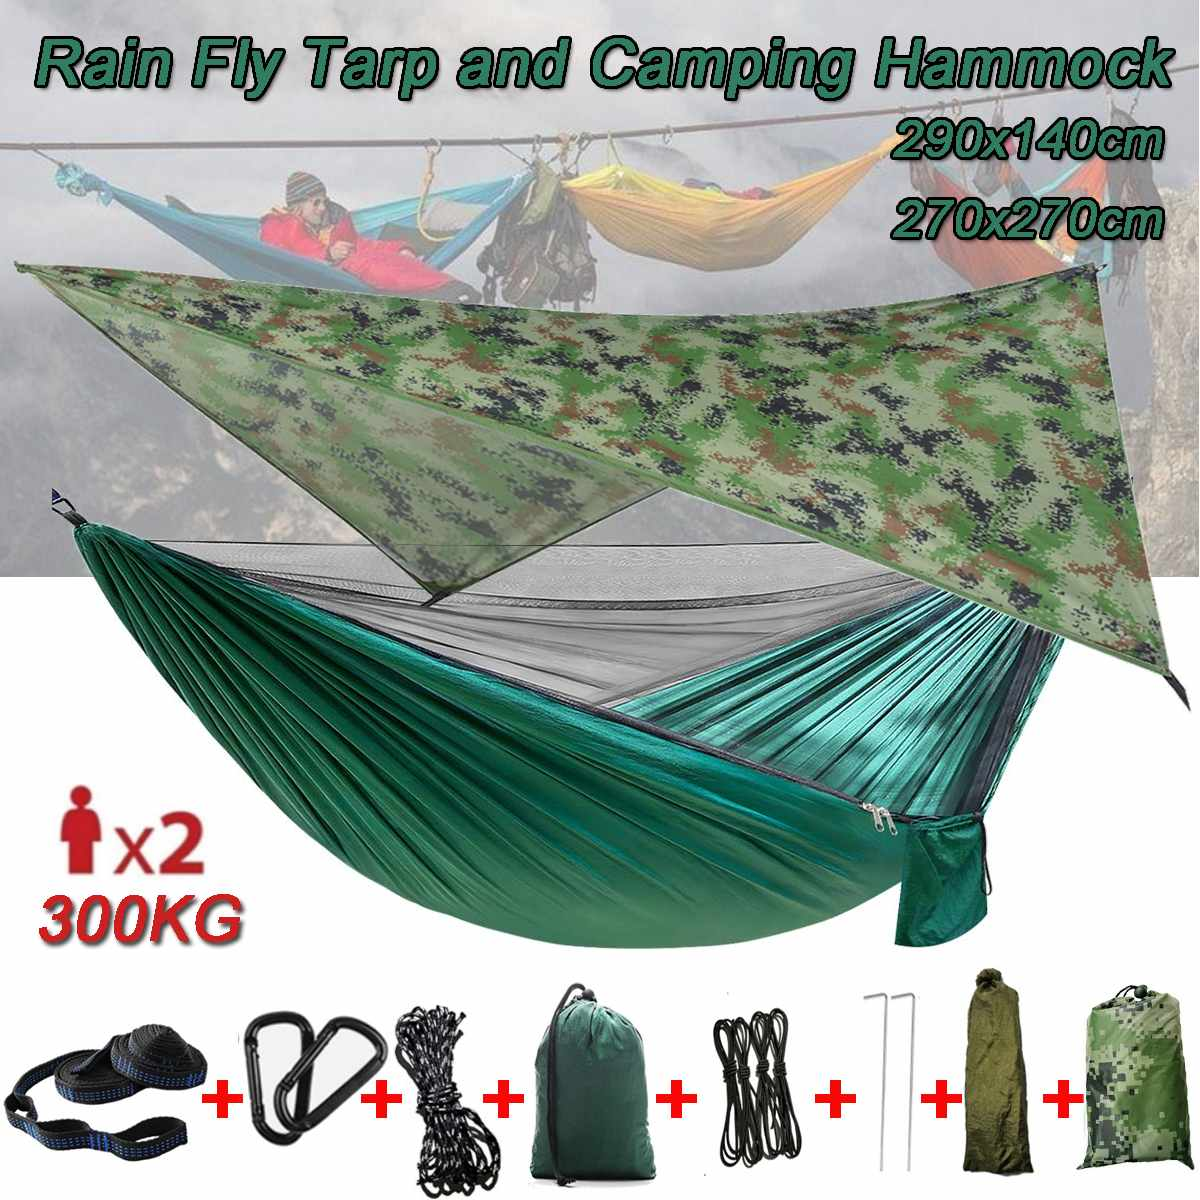 300KG Hammock Outdoor Garden Camping Hanging Chair For Child Adult Swinging Double Safety Chair